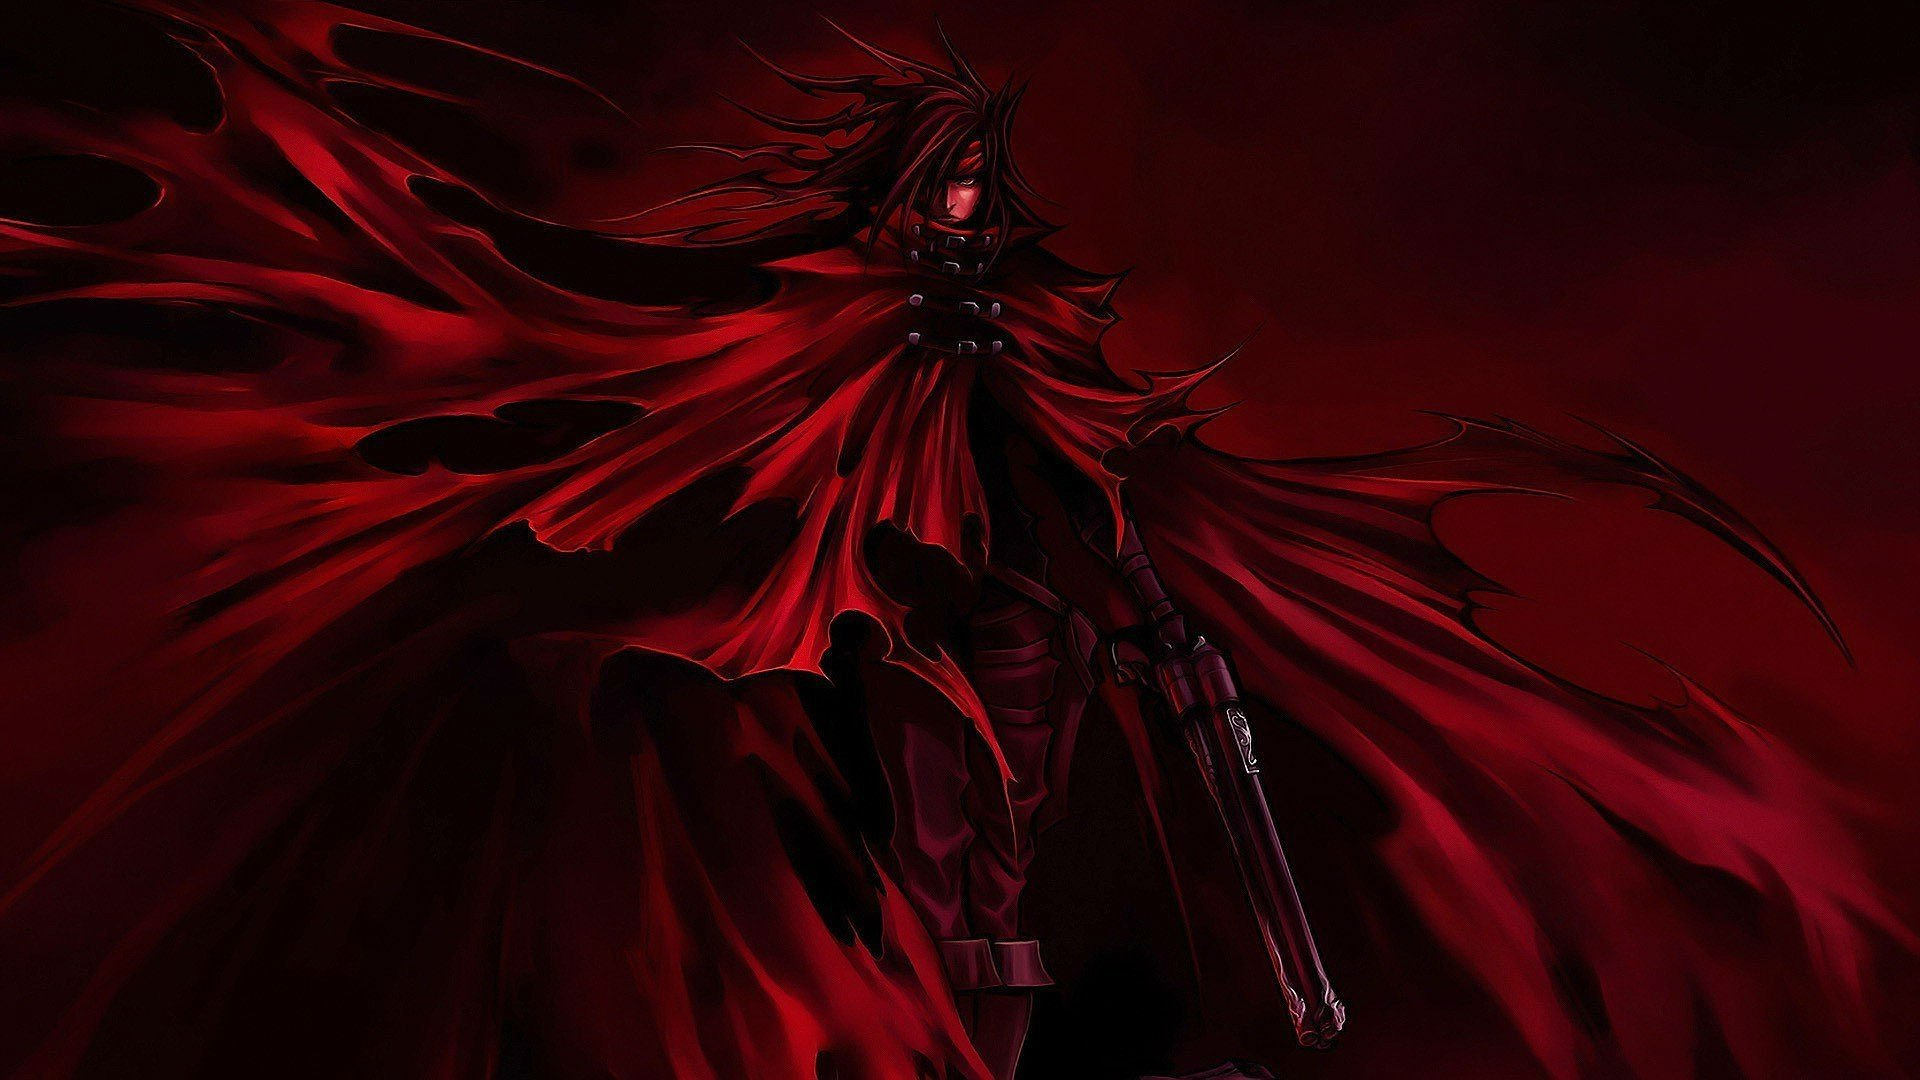 17 Vincent Valentine Hd Wallpapers Background Images Wallpaper Abyss